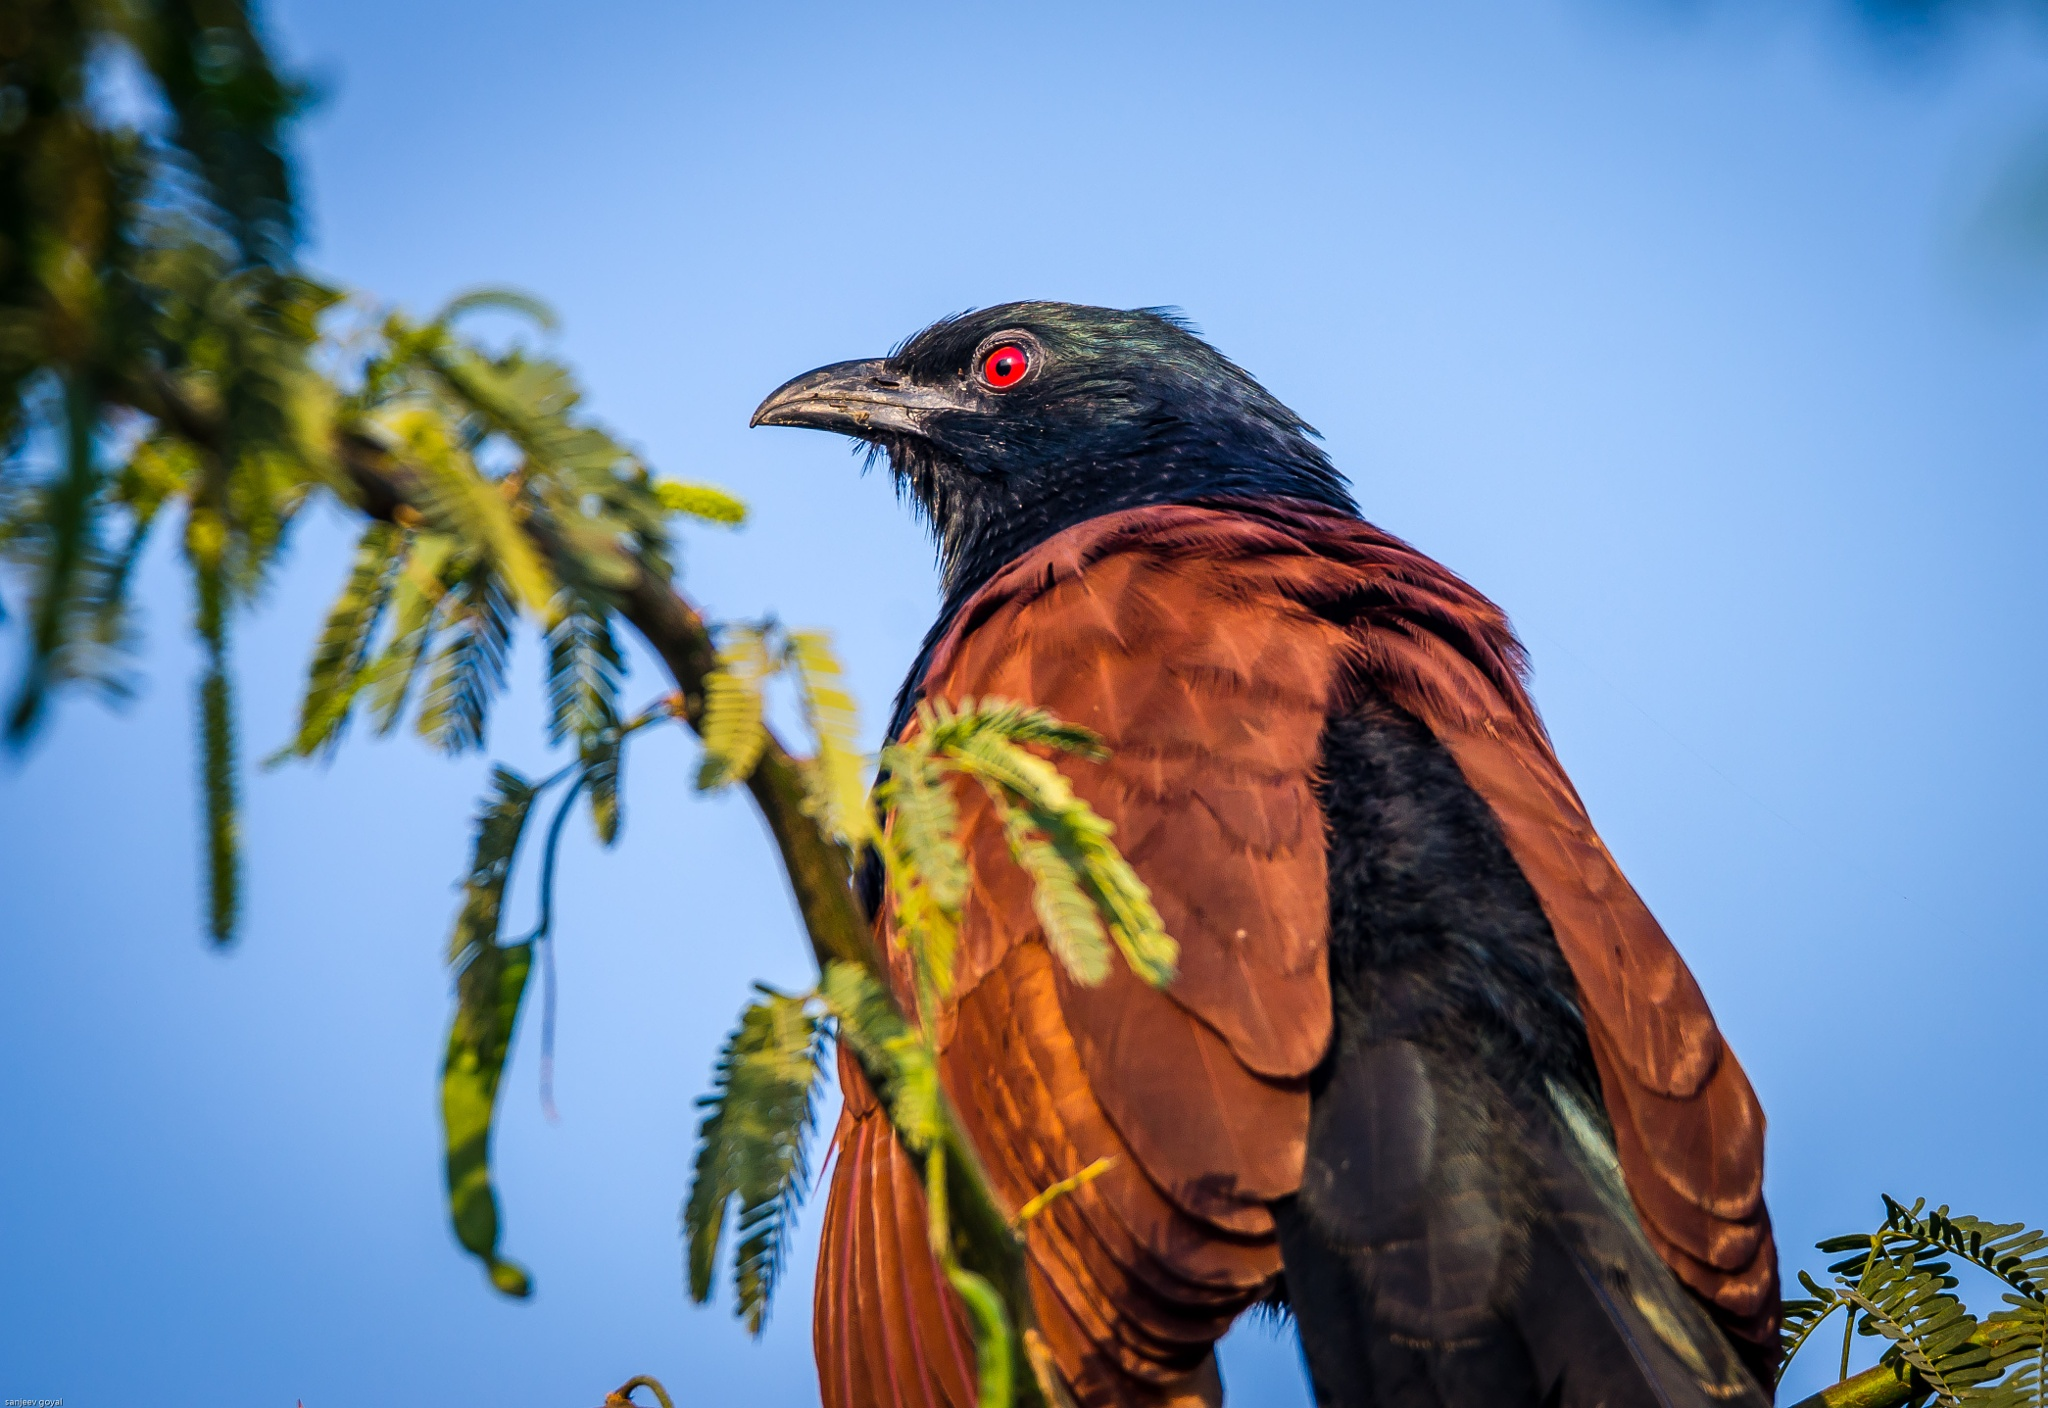 Greater Coucal by sanjeev.k.goyal.10